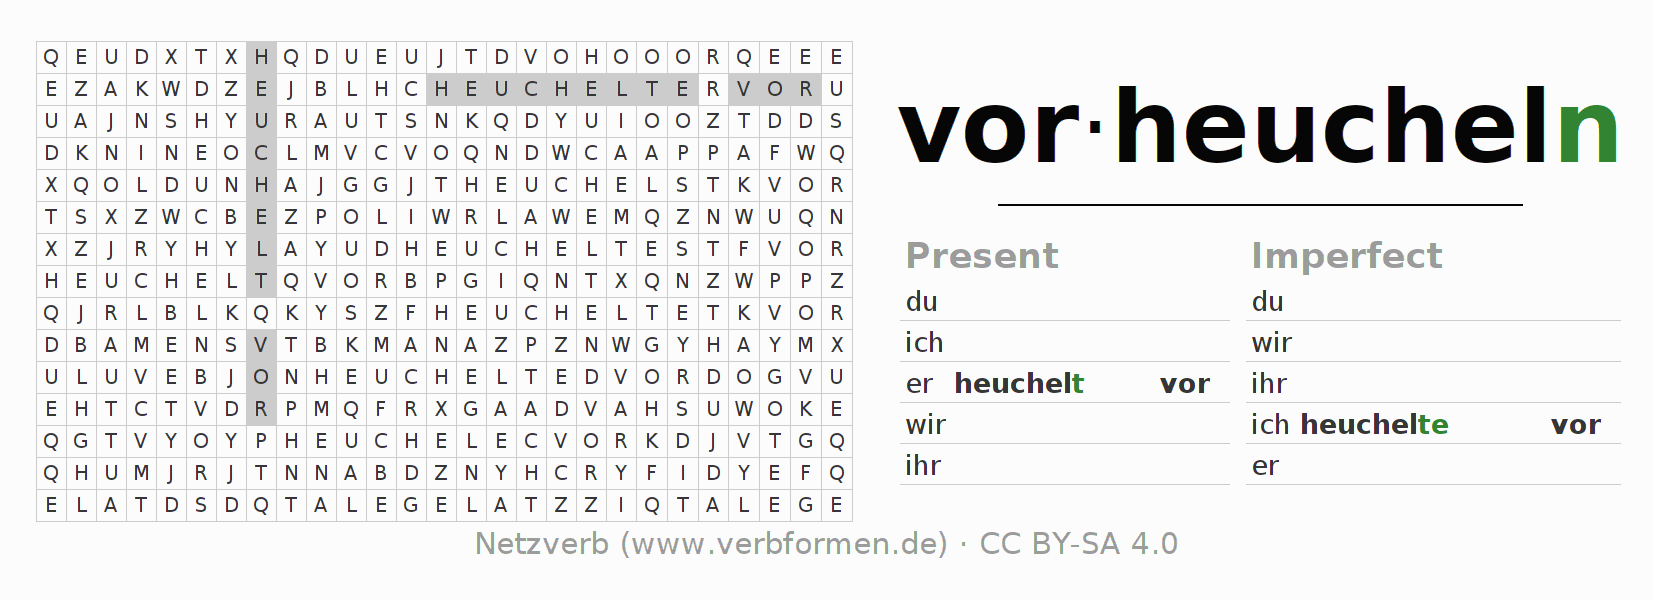 Word search puzzle for the conjugation of the verb vorheucheln